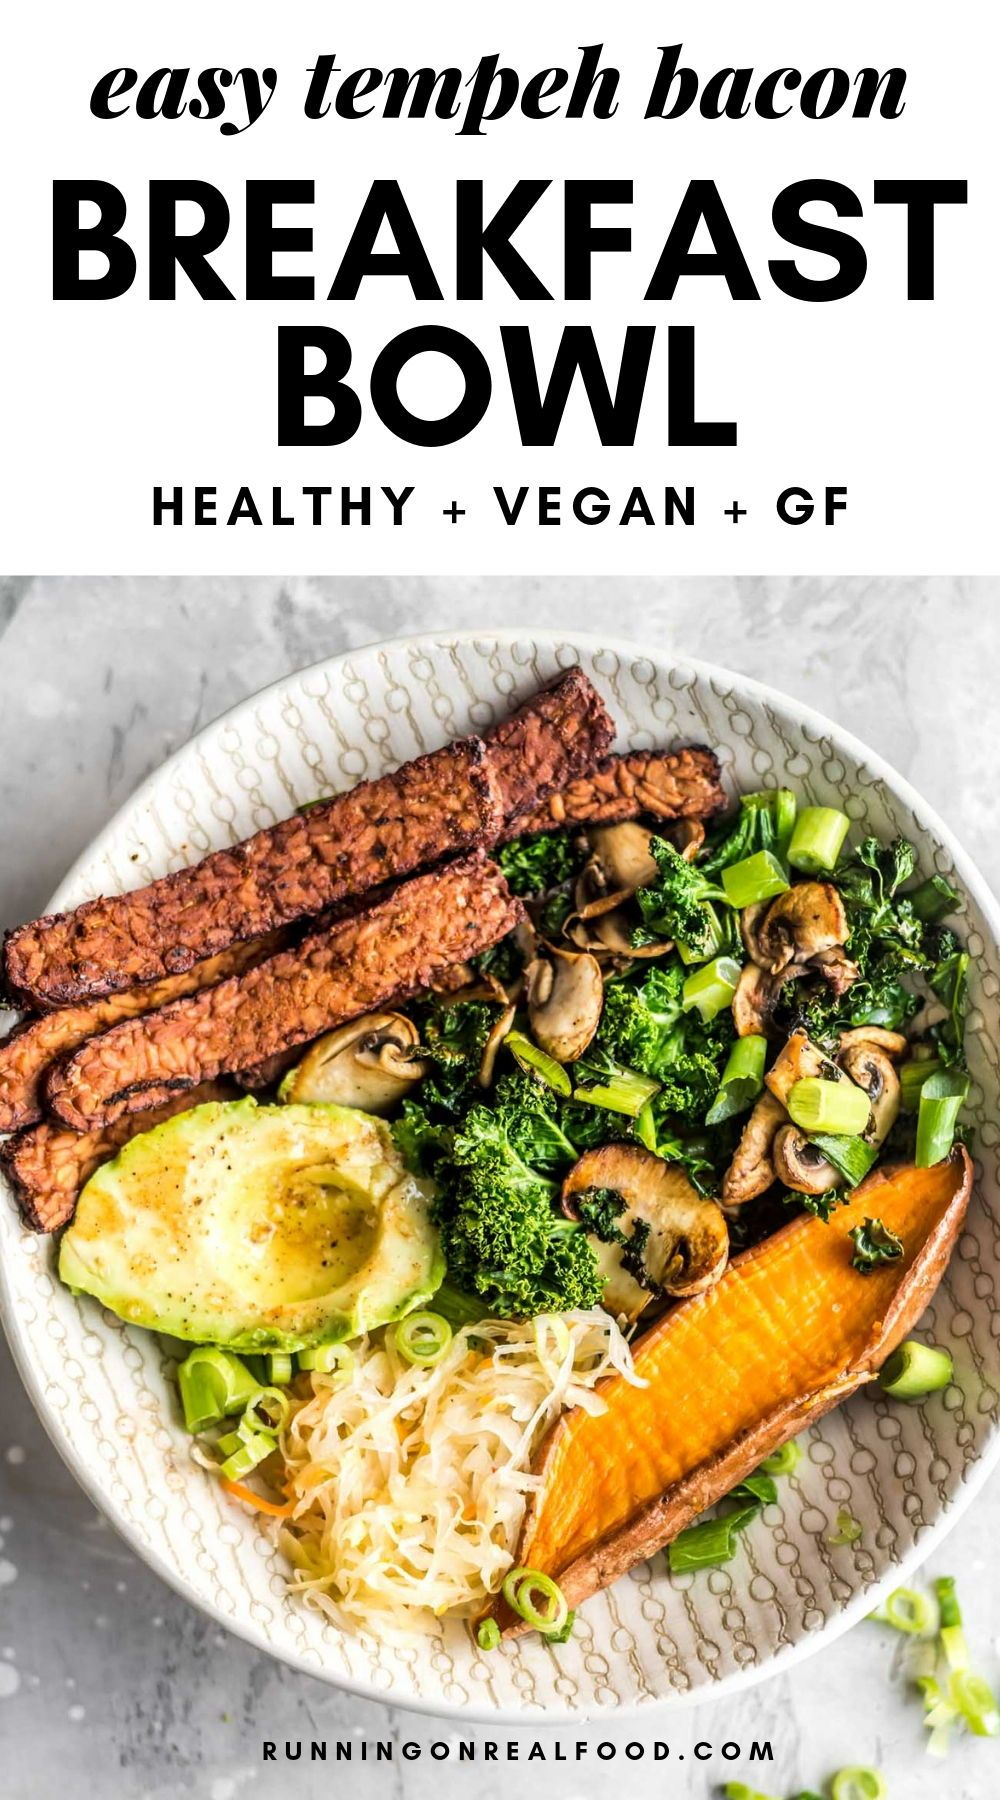 Tempeh Bacon And Avocado Breakfast Bowl